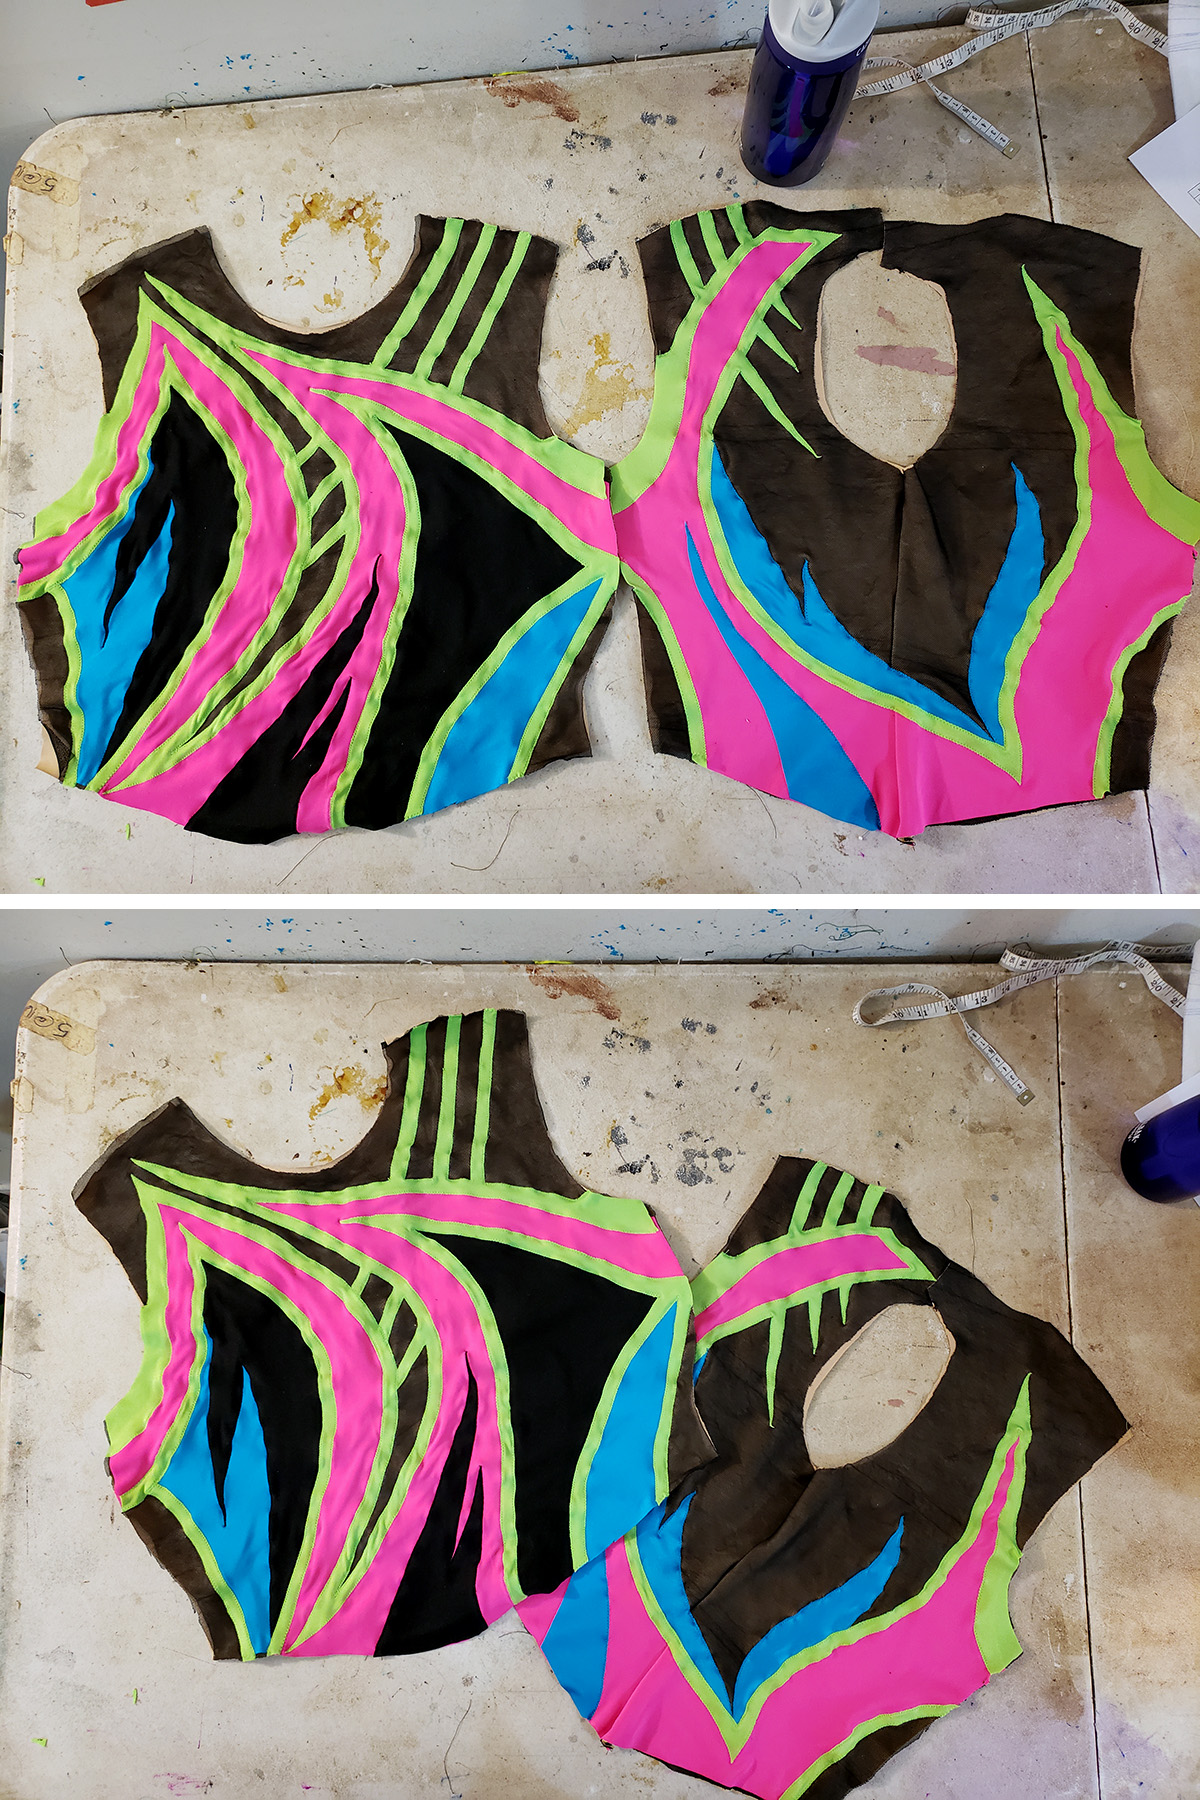 A two part compilation image showing the front and back bodice pieces of the 80's themed skating dress, side by side.